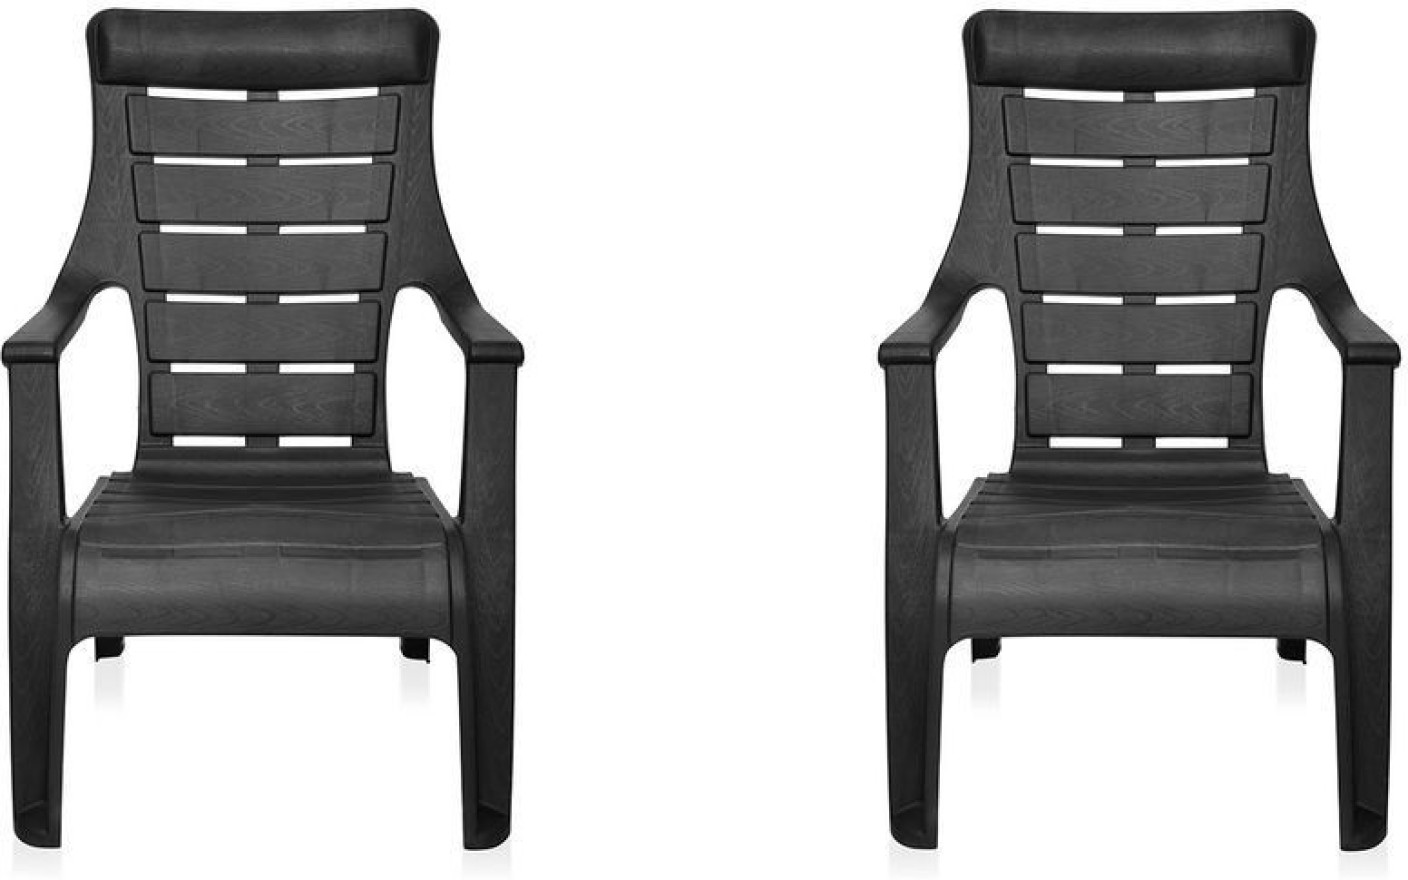 Nilkamal Sunday Plastic Outdoor Chair Price In India Buy Nilkamal Sunday Plastic Outdoor Chair